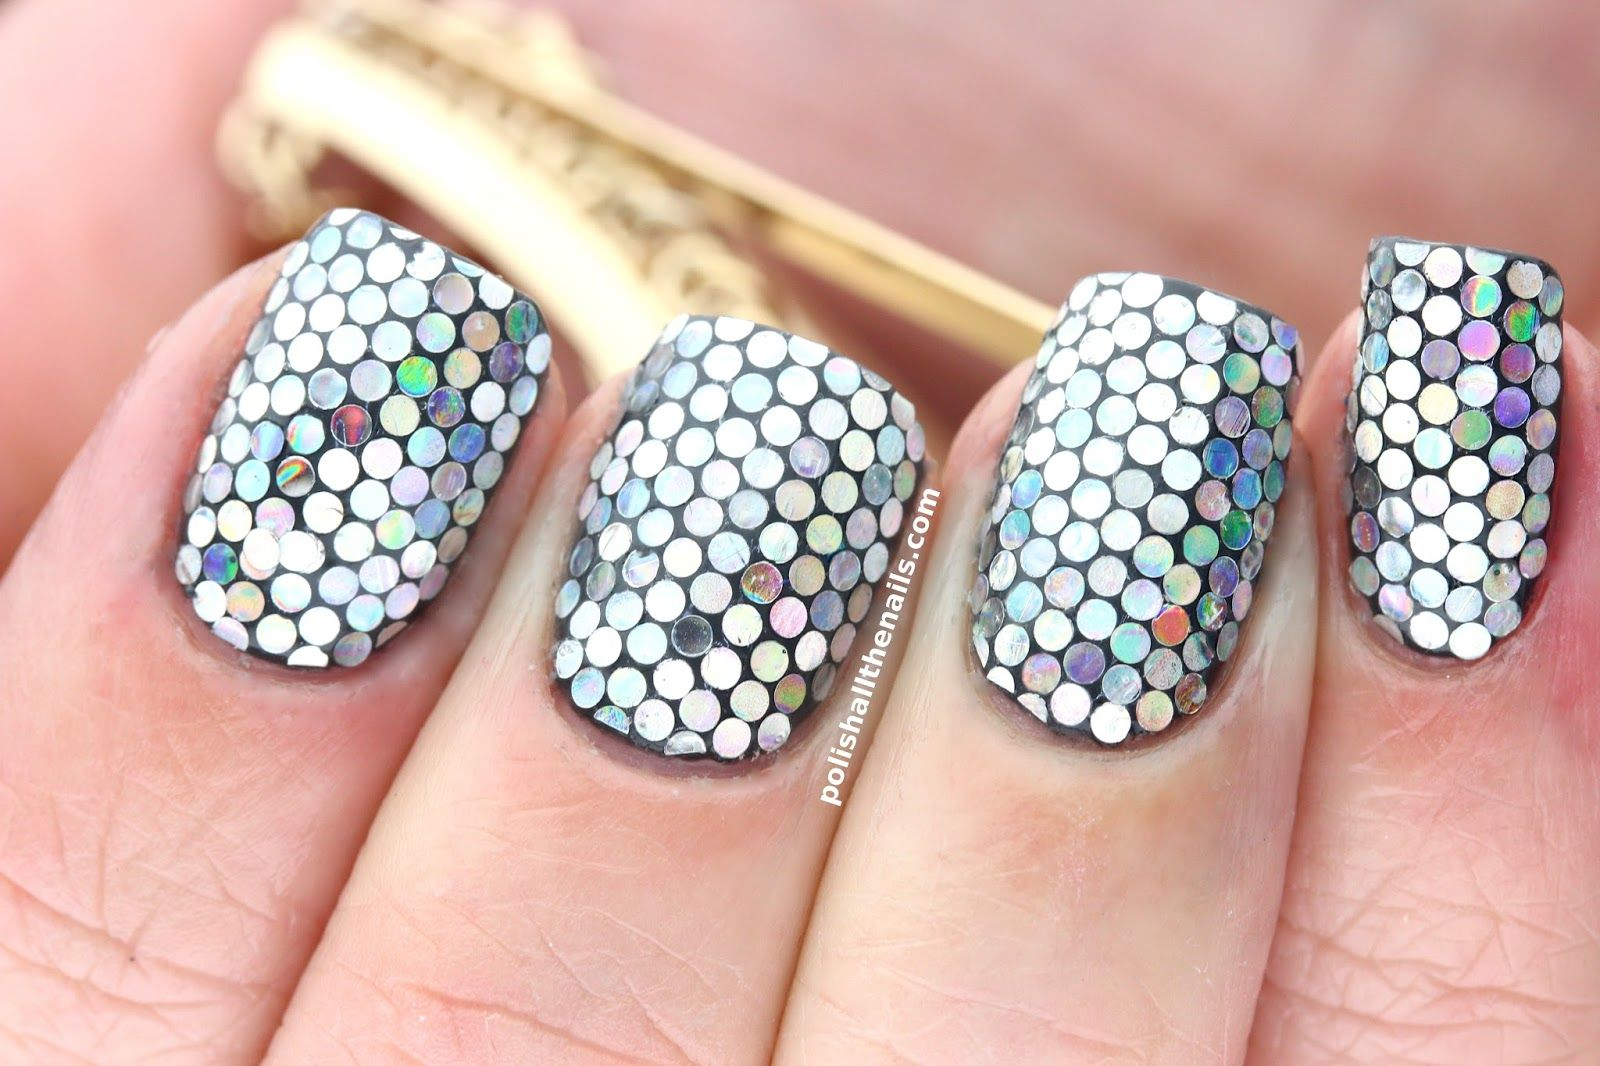 Polish All the Nails: Sparkly Circle Glitter Nails Because I Have to Match Chalkboard Nails!